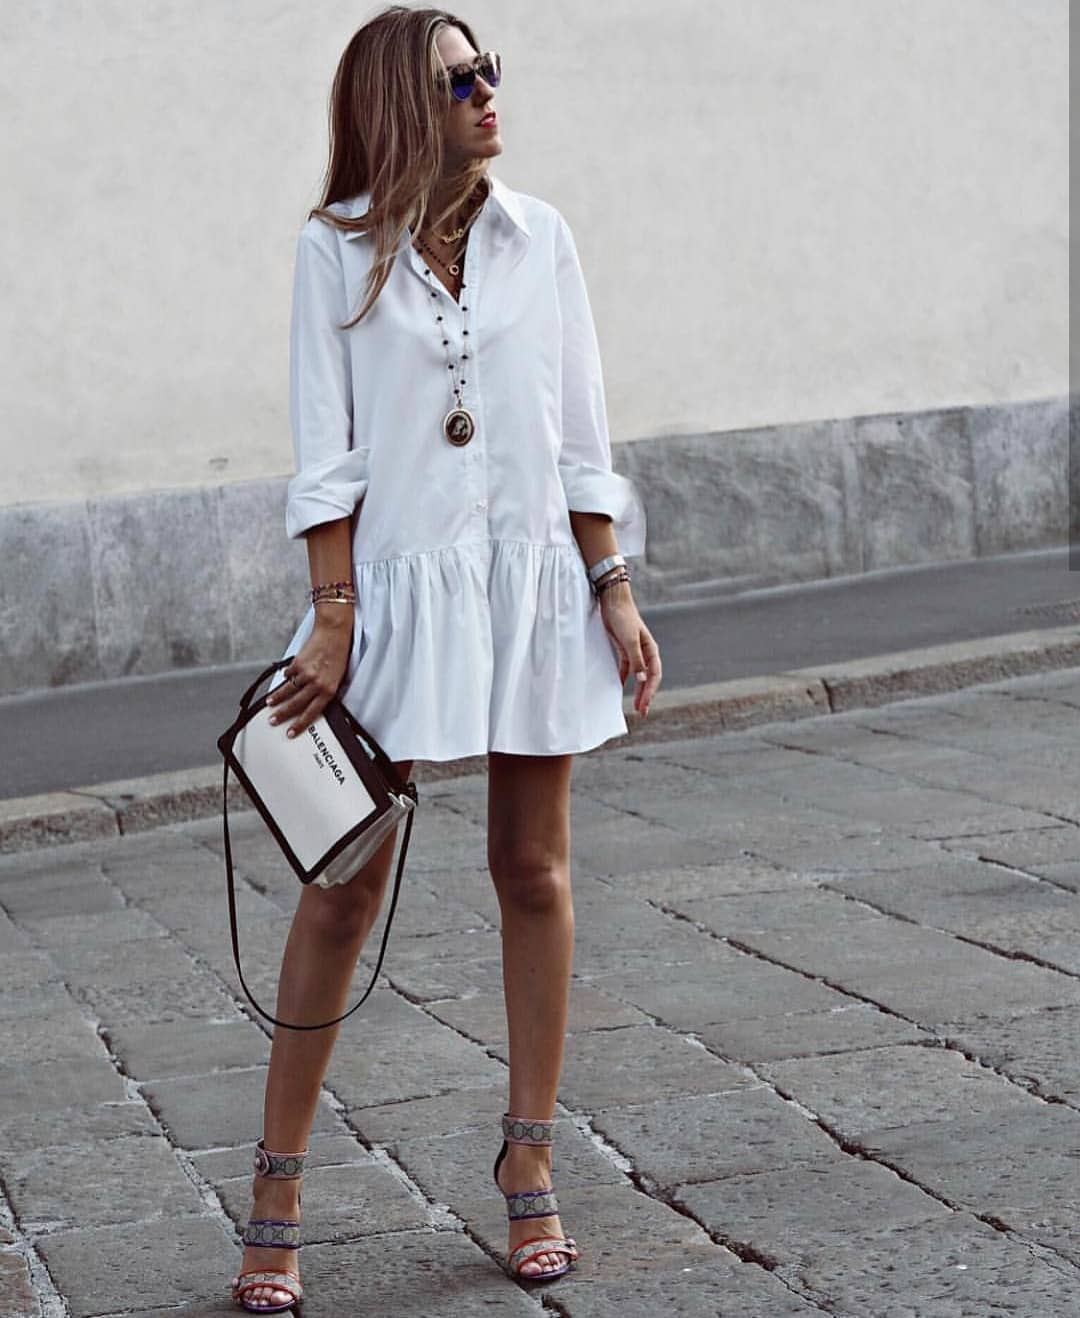 How To Complete Long Sleeve Shirtdress In White For Summer 2019